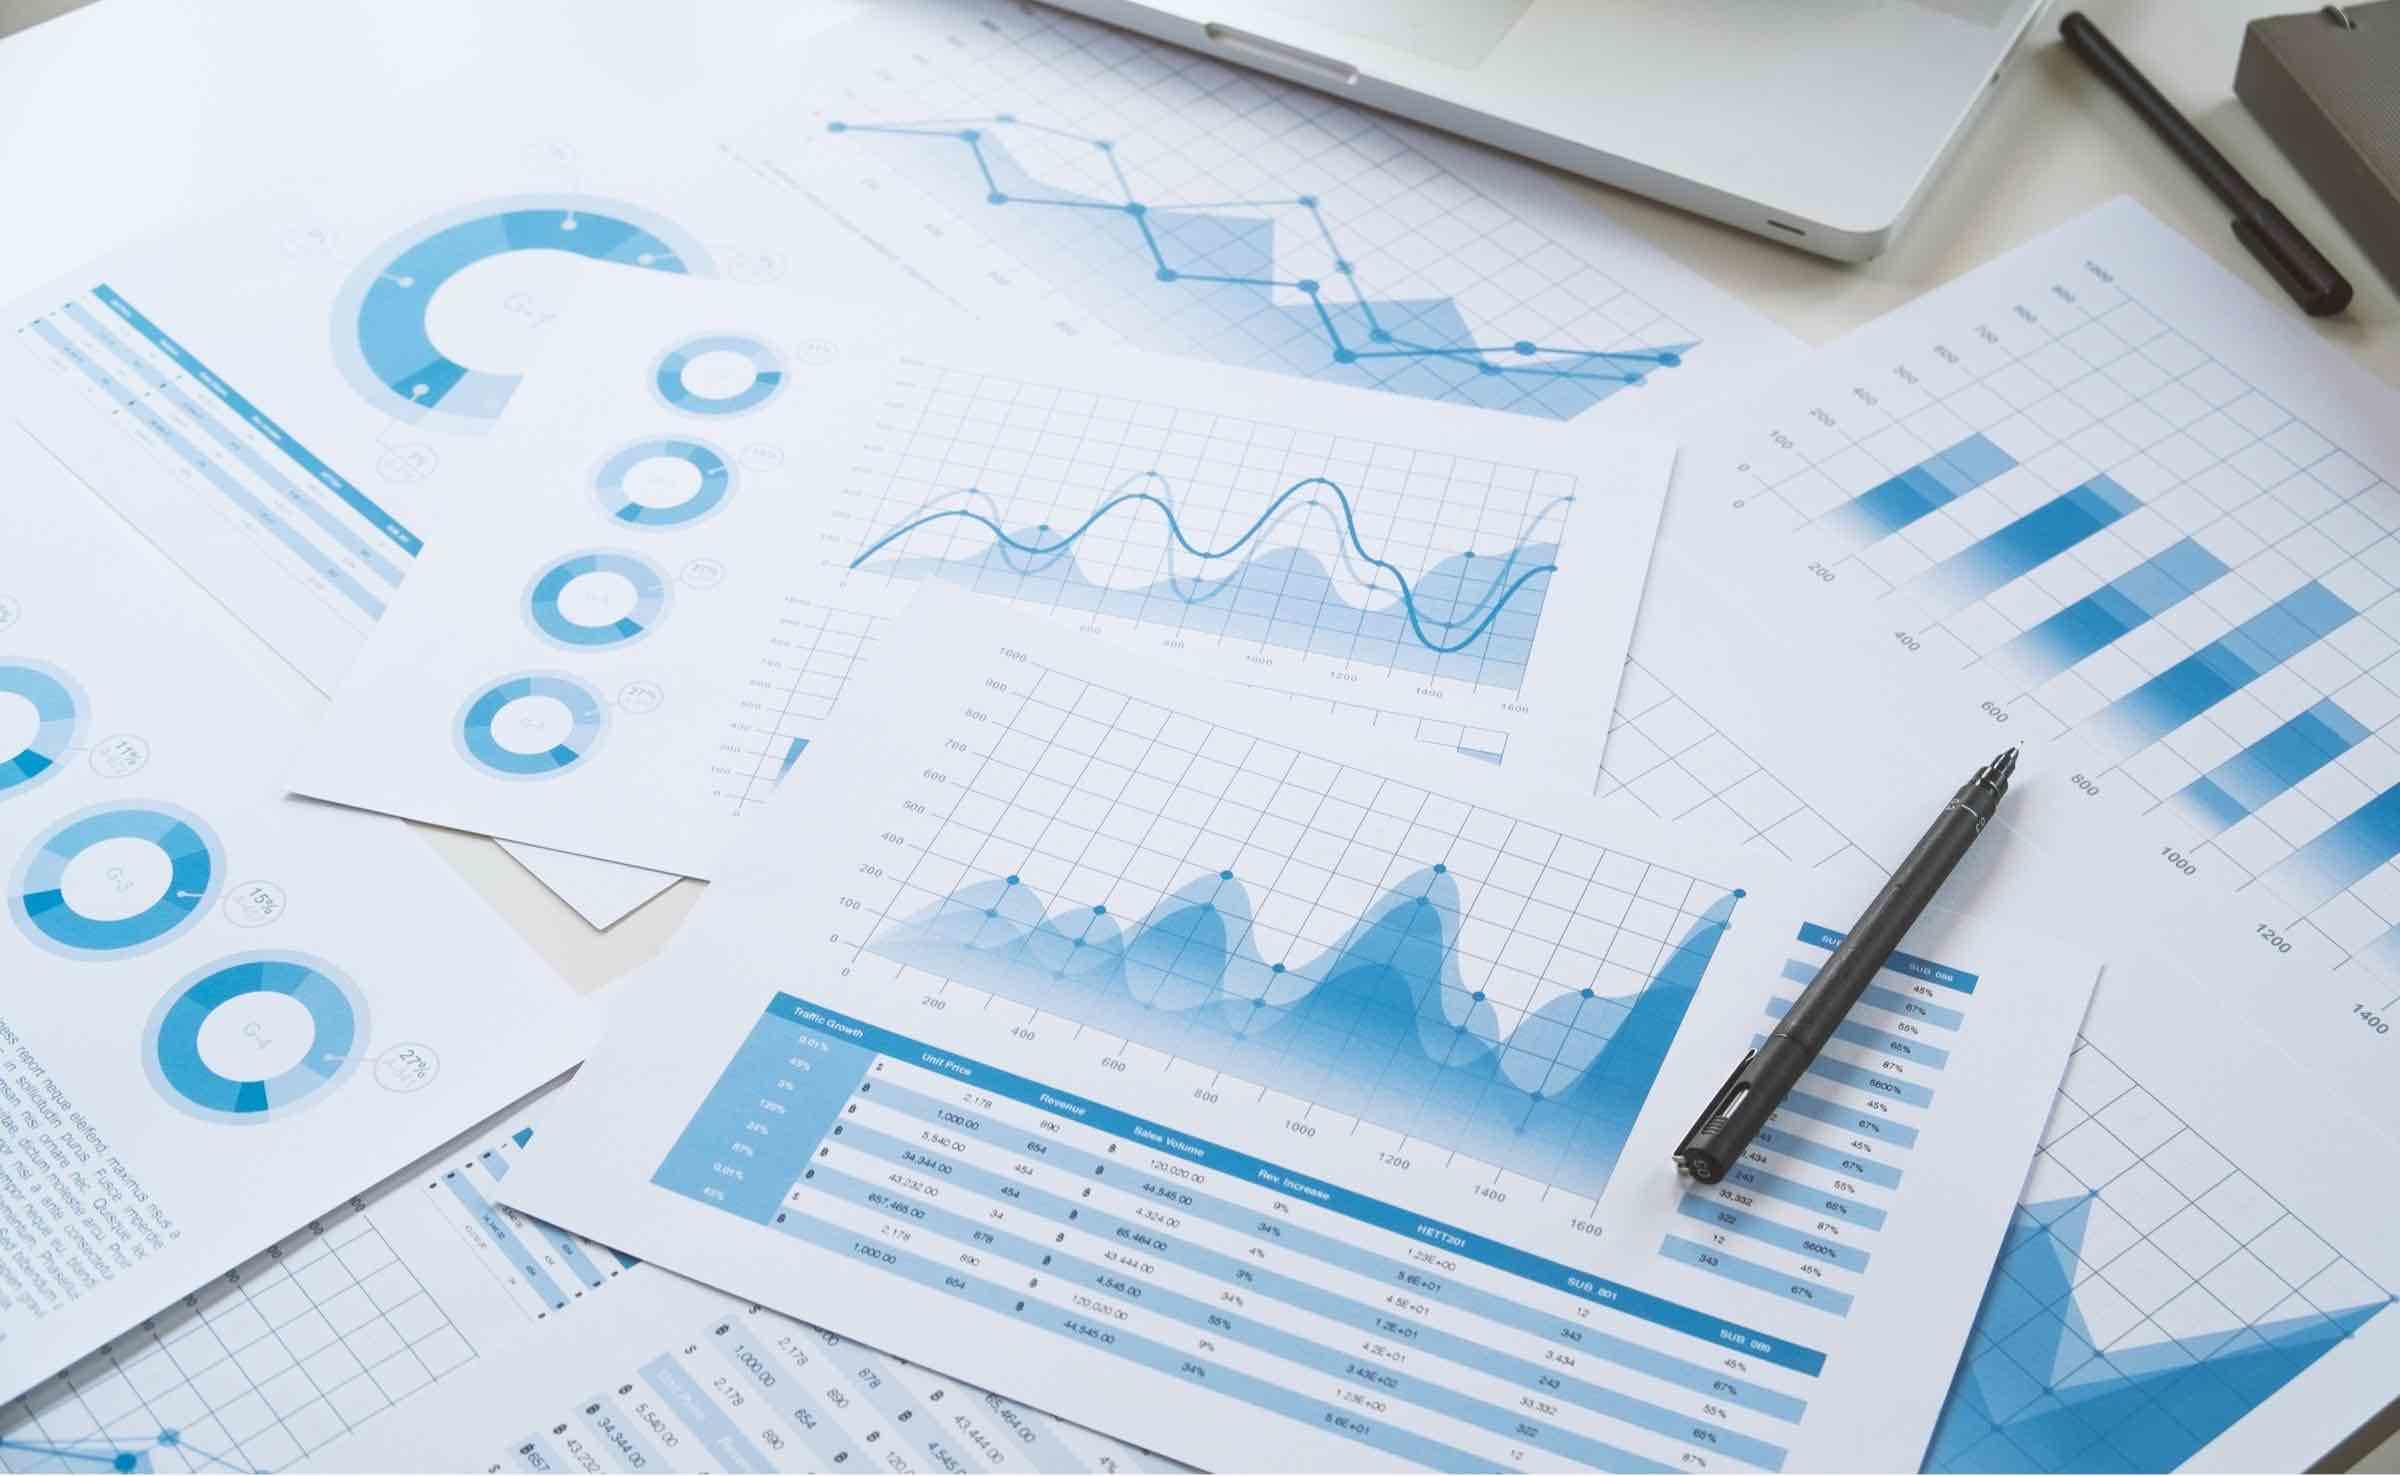 Multiple financial analysis documents and charts